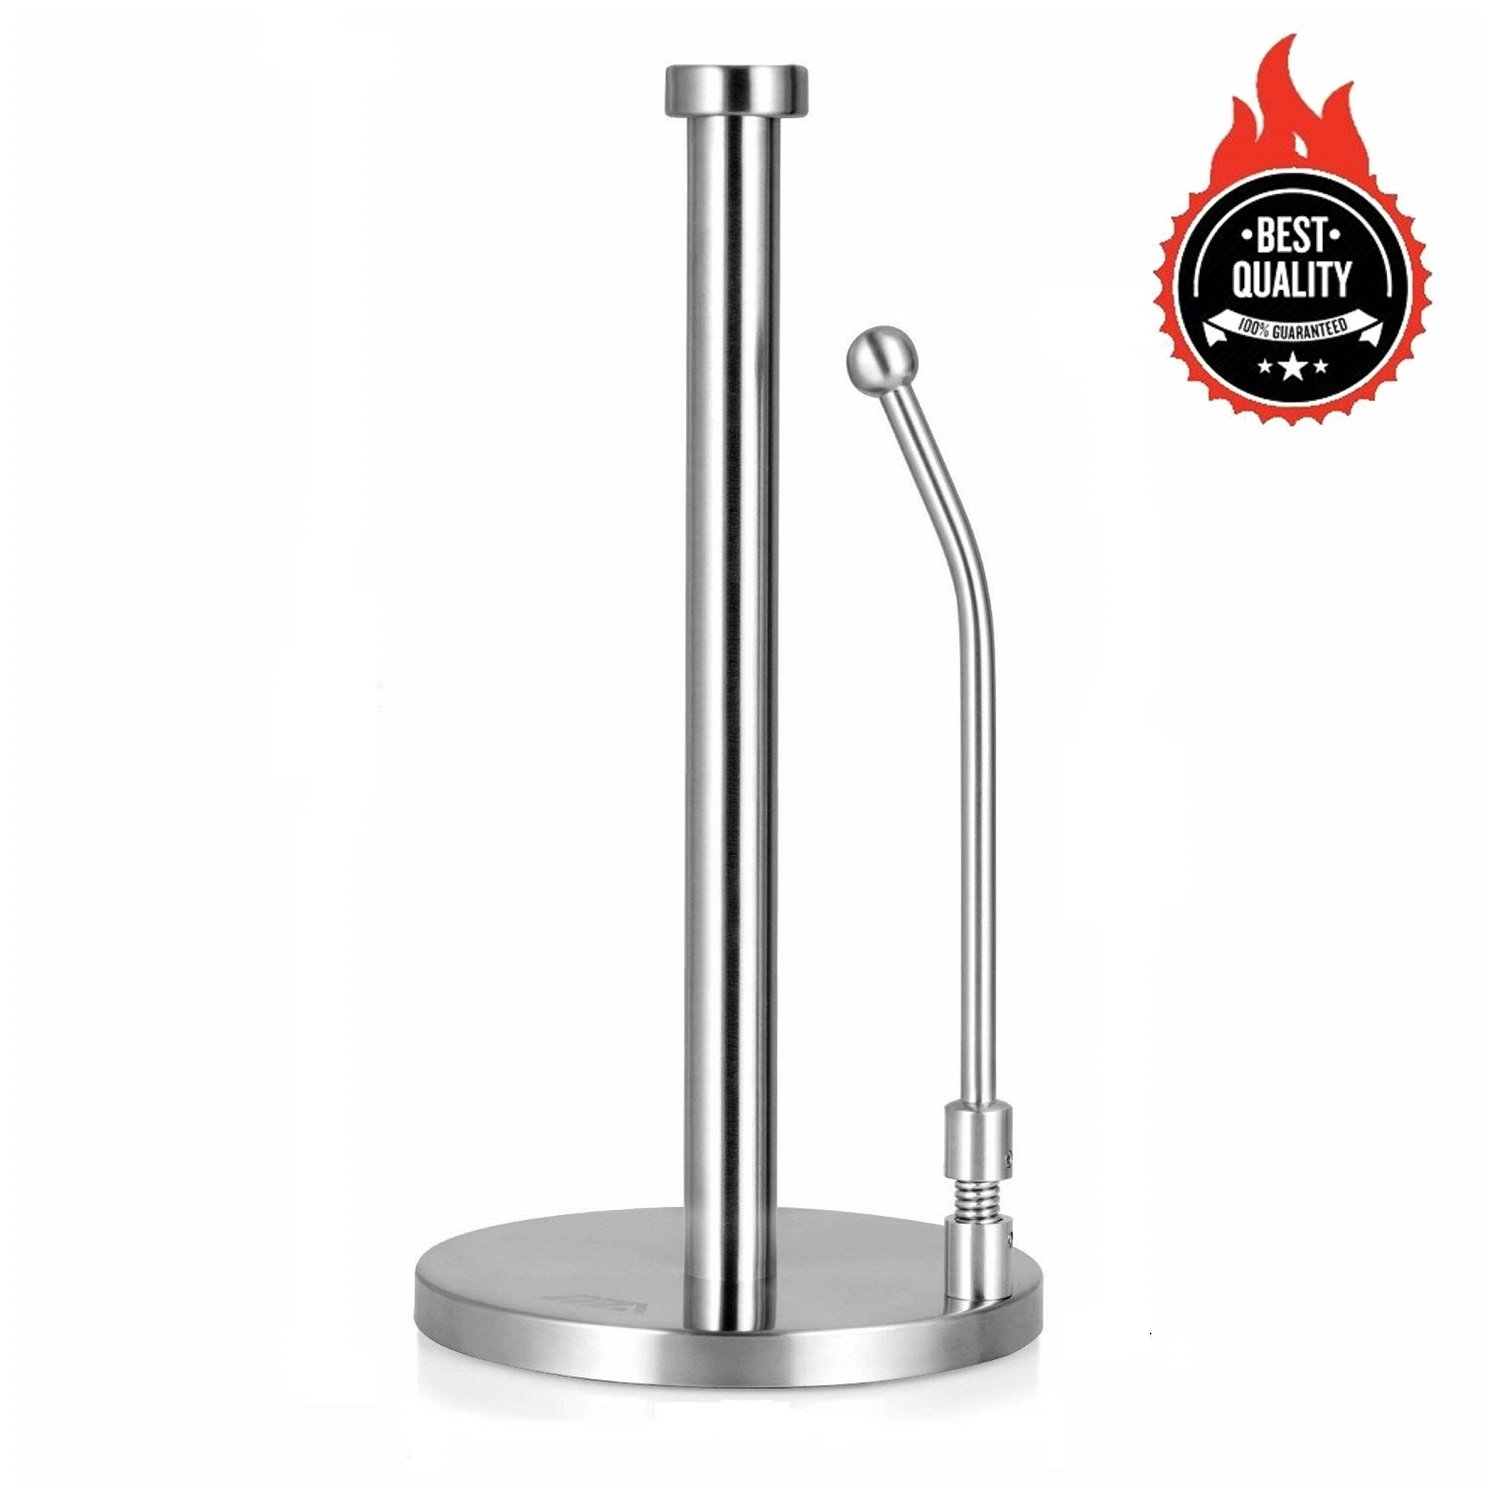 Awekris Paper Towel Holder Tension Arm Standing Paper Towel Holder Simply Tear Roll Contemporary Paper Towel Holder/Tissue Holder Countertop with Weighted Base for Tissue and Garbage Bags in Roll